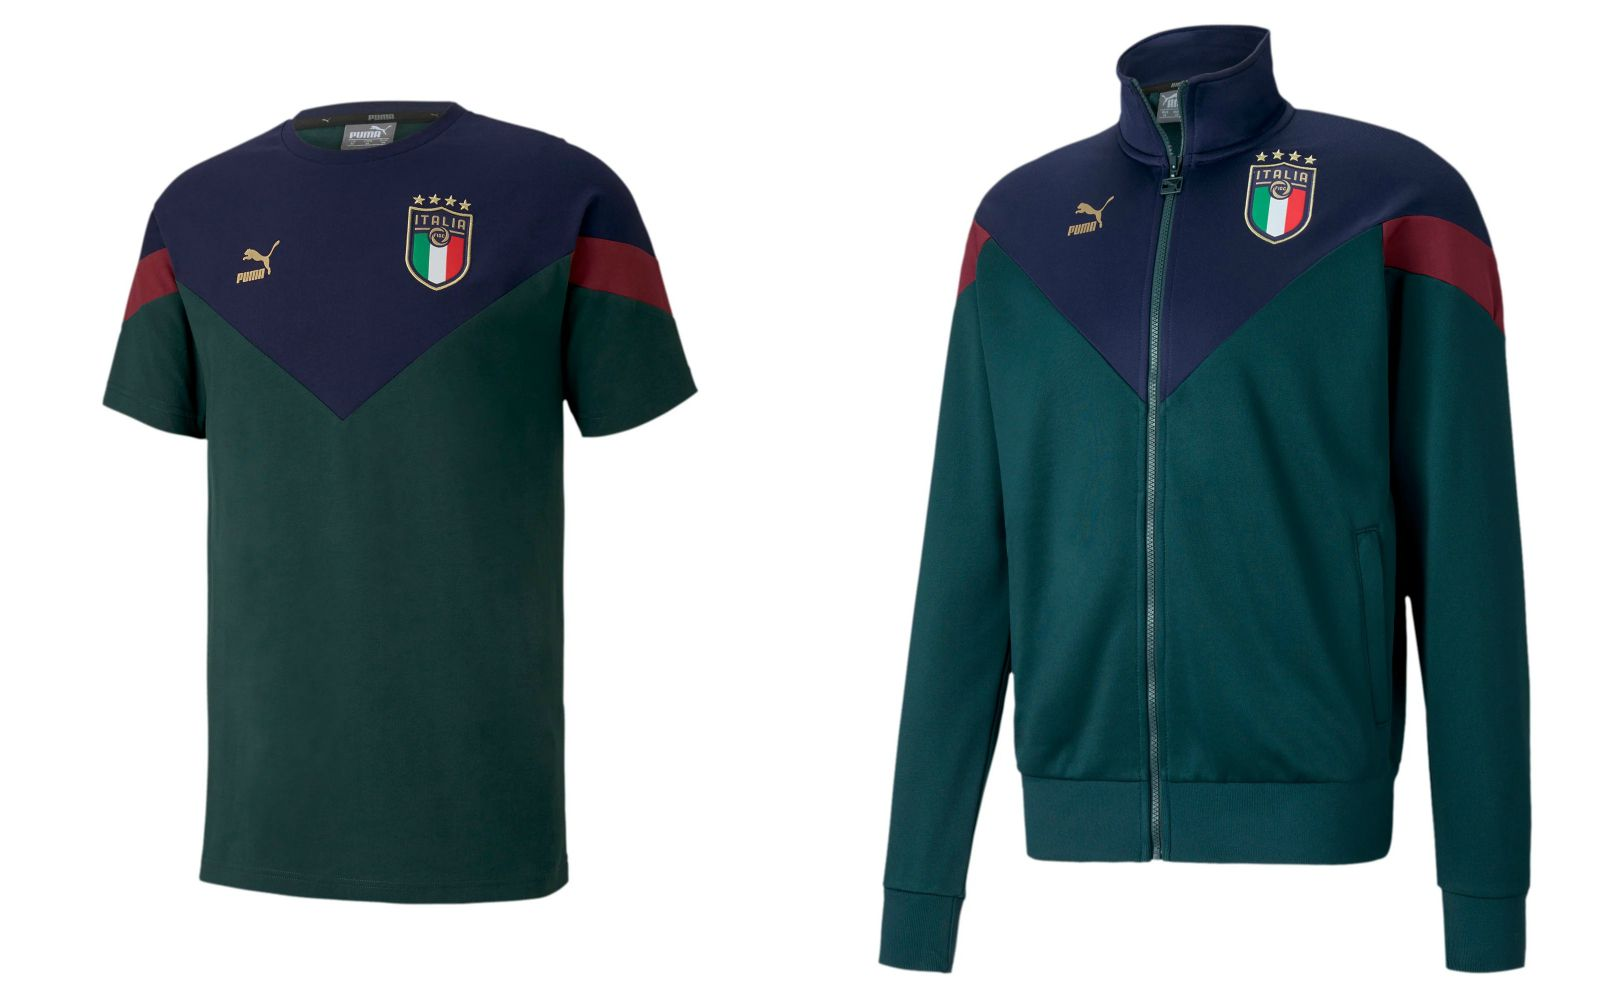 The new PUMA collection for the Italy National Team